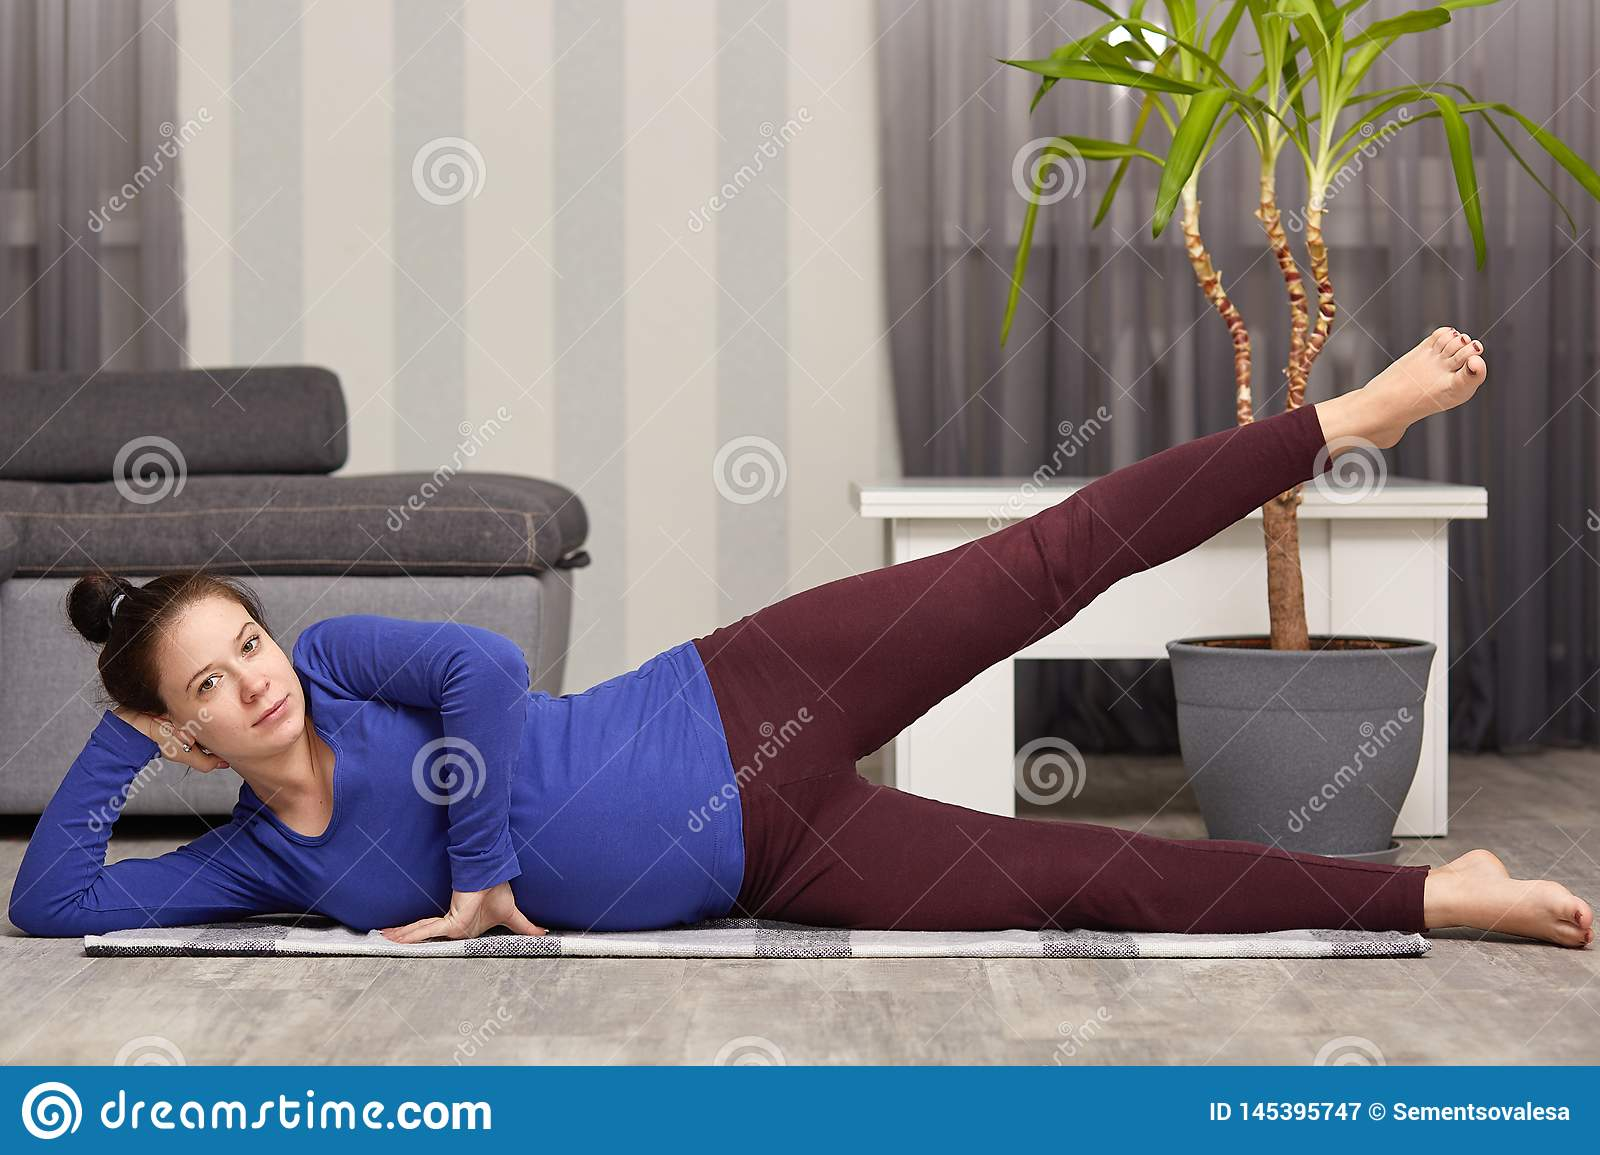 Healthy lifestyle during pregnancy. Pregnant woman lies on her hip and lifting her leg, has dark hair combed in knot, models